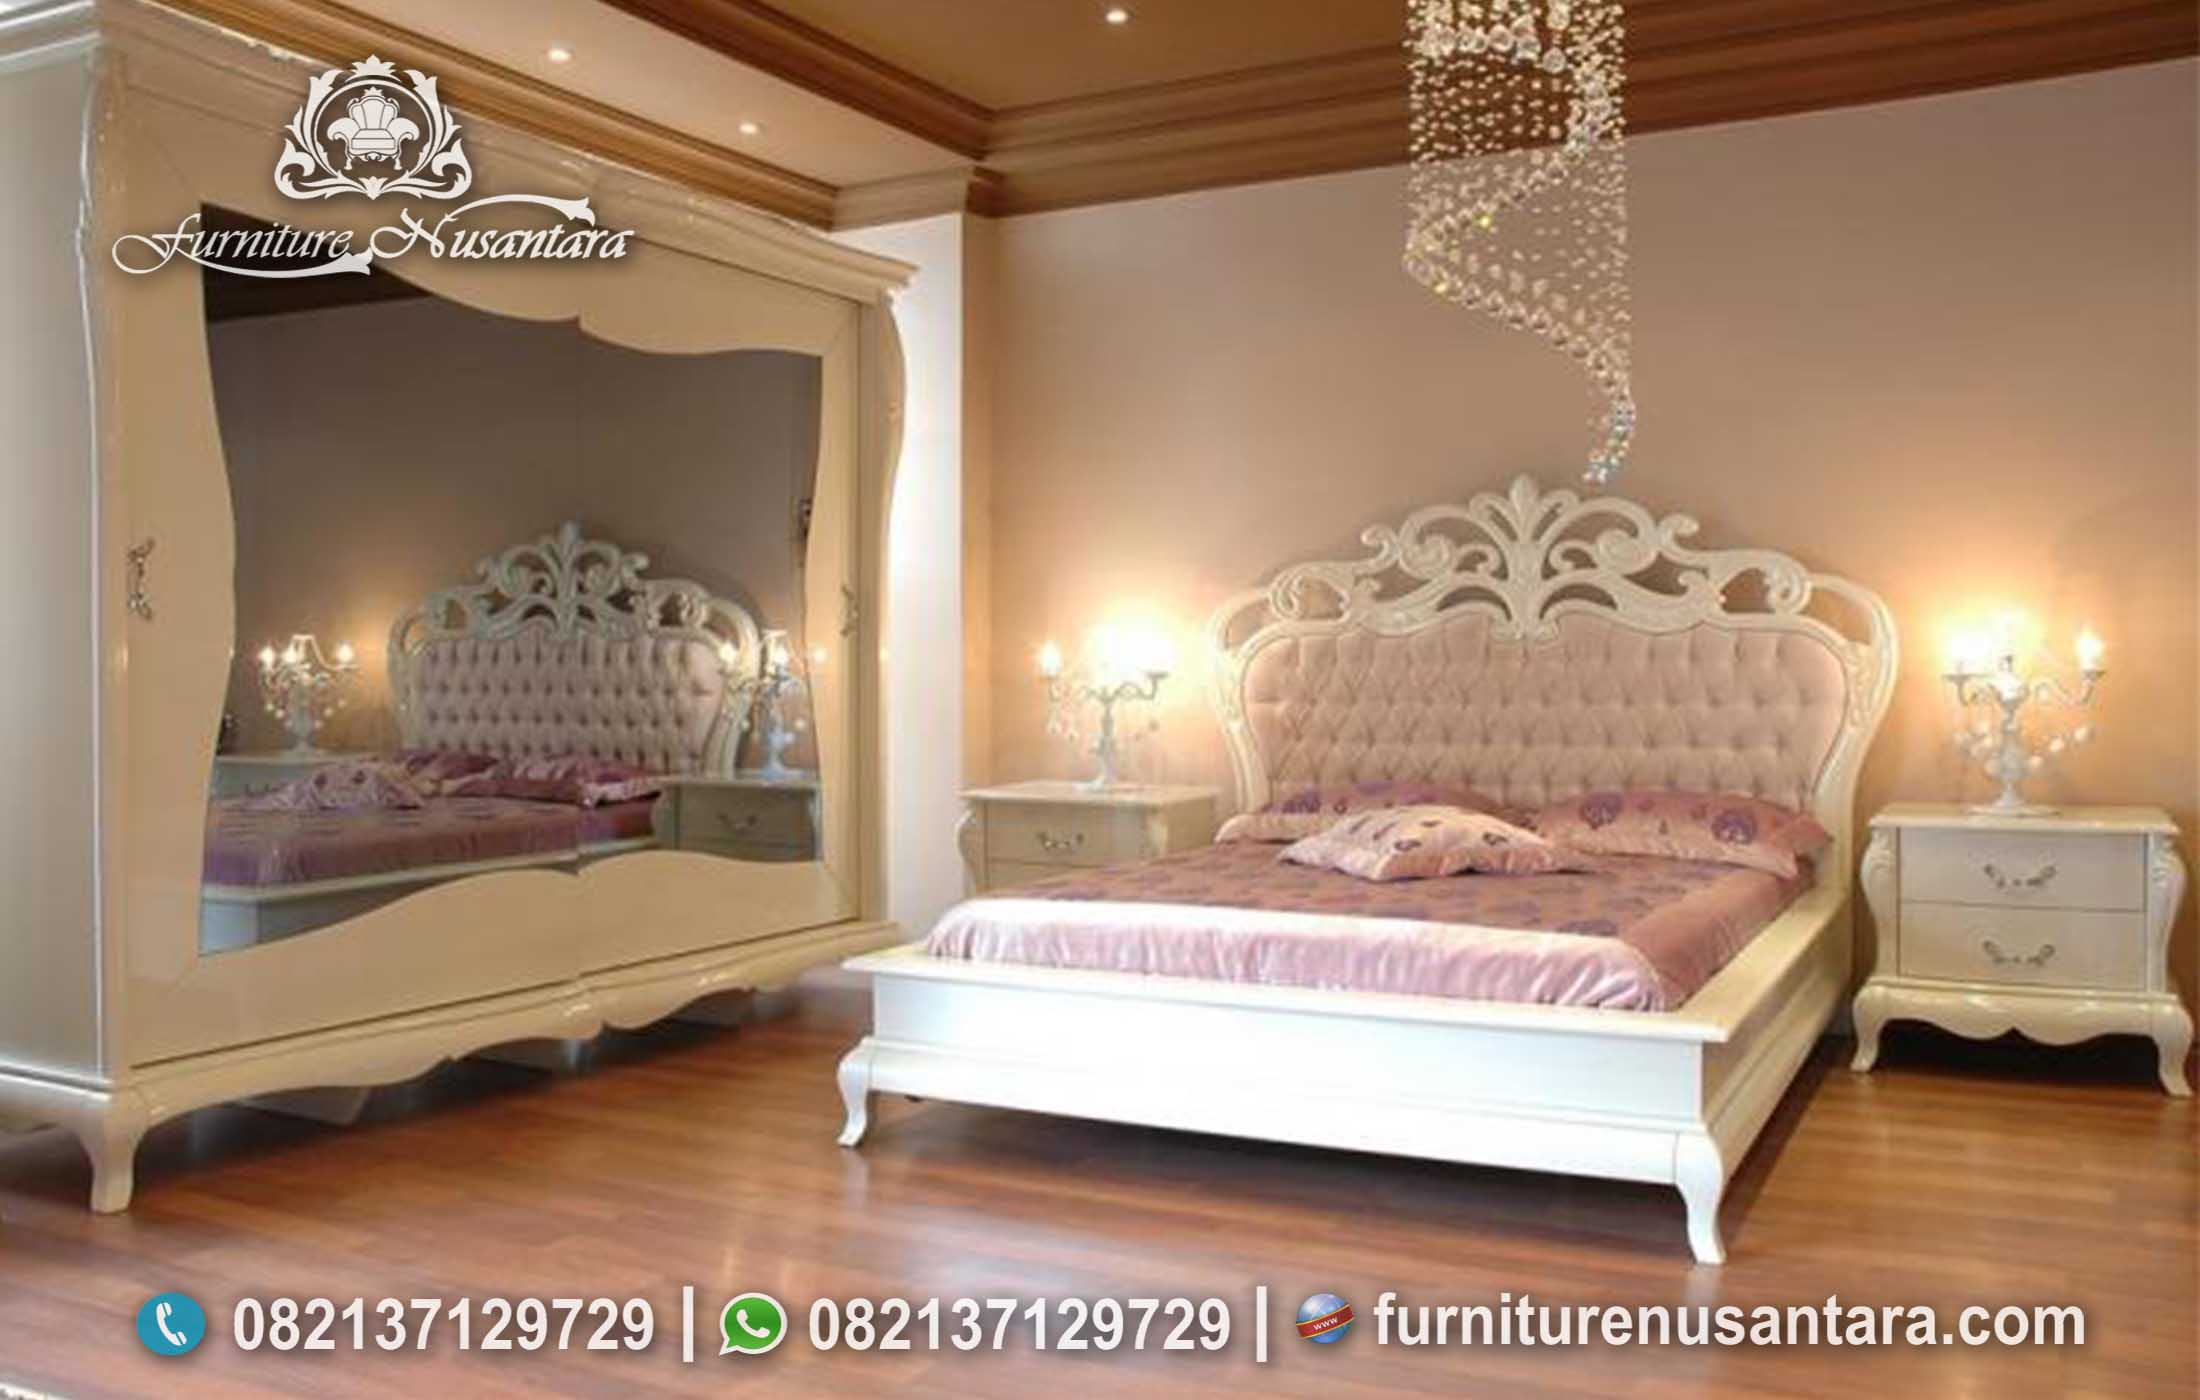 Kamar Set Klasik Modern Feminim KS-232, Furniture Nusantara